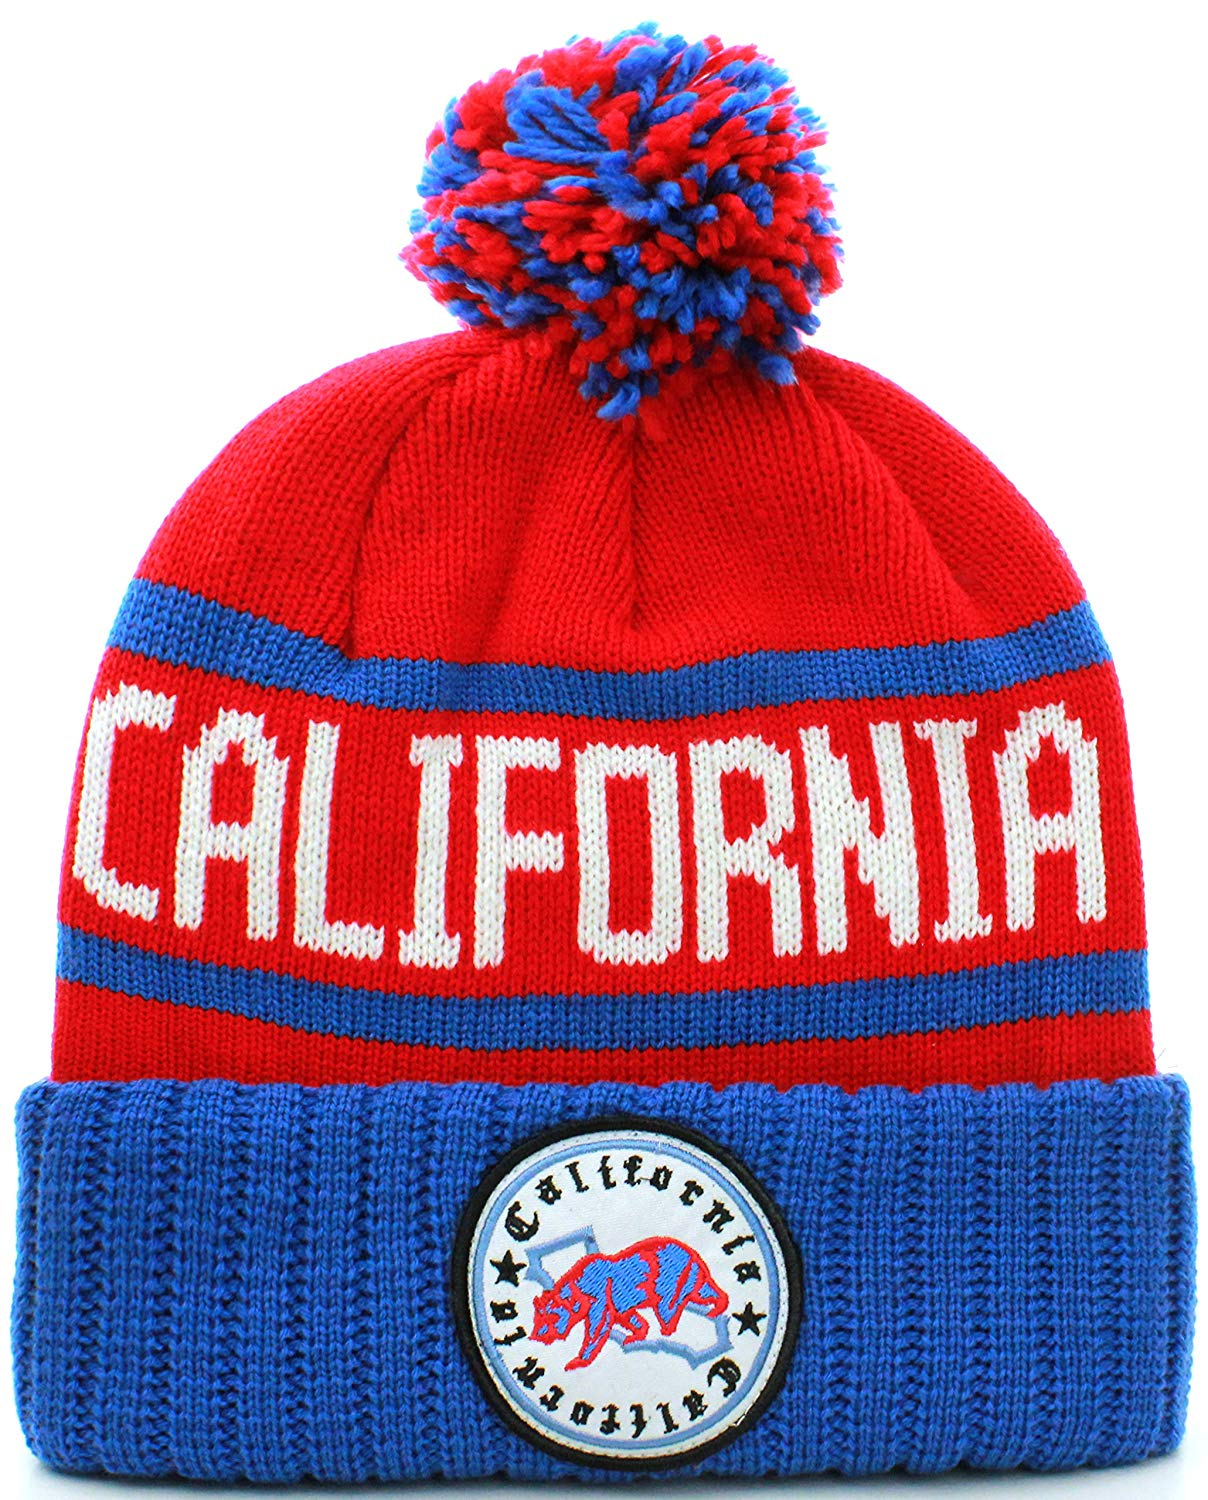 27a23695a72505 Get Quotations · Absolute Clothing California Republic Cuff Beanie Cable Knit  Pom Pom Hat Cap